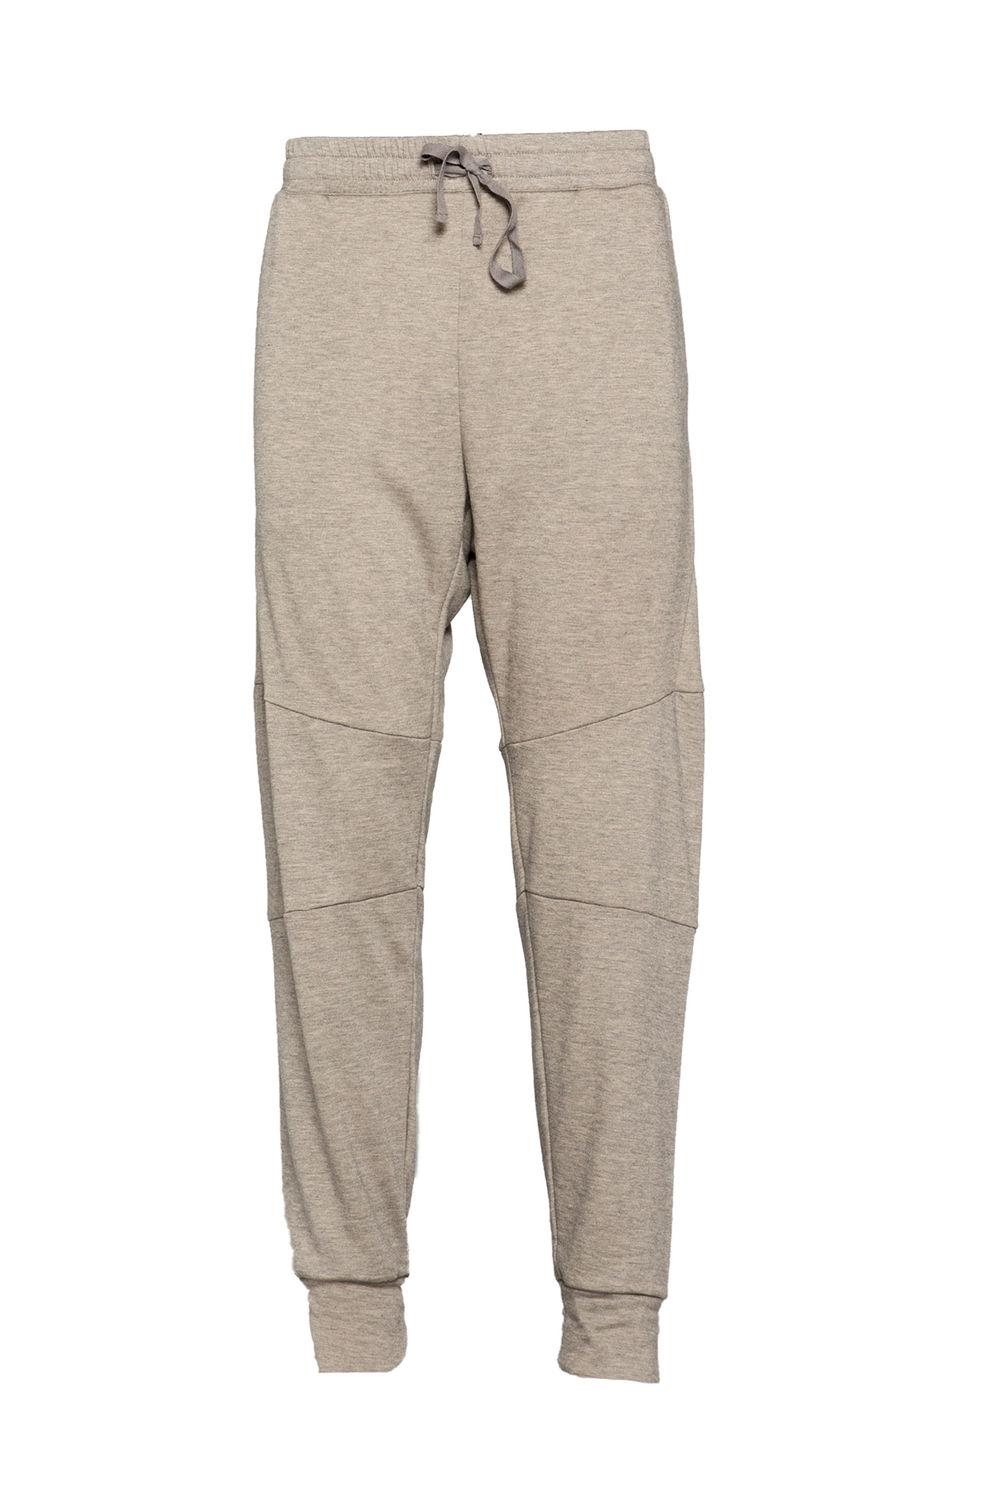 Venice Sweat Pants - Oatmeal